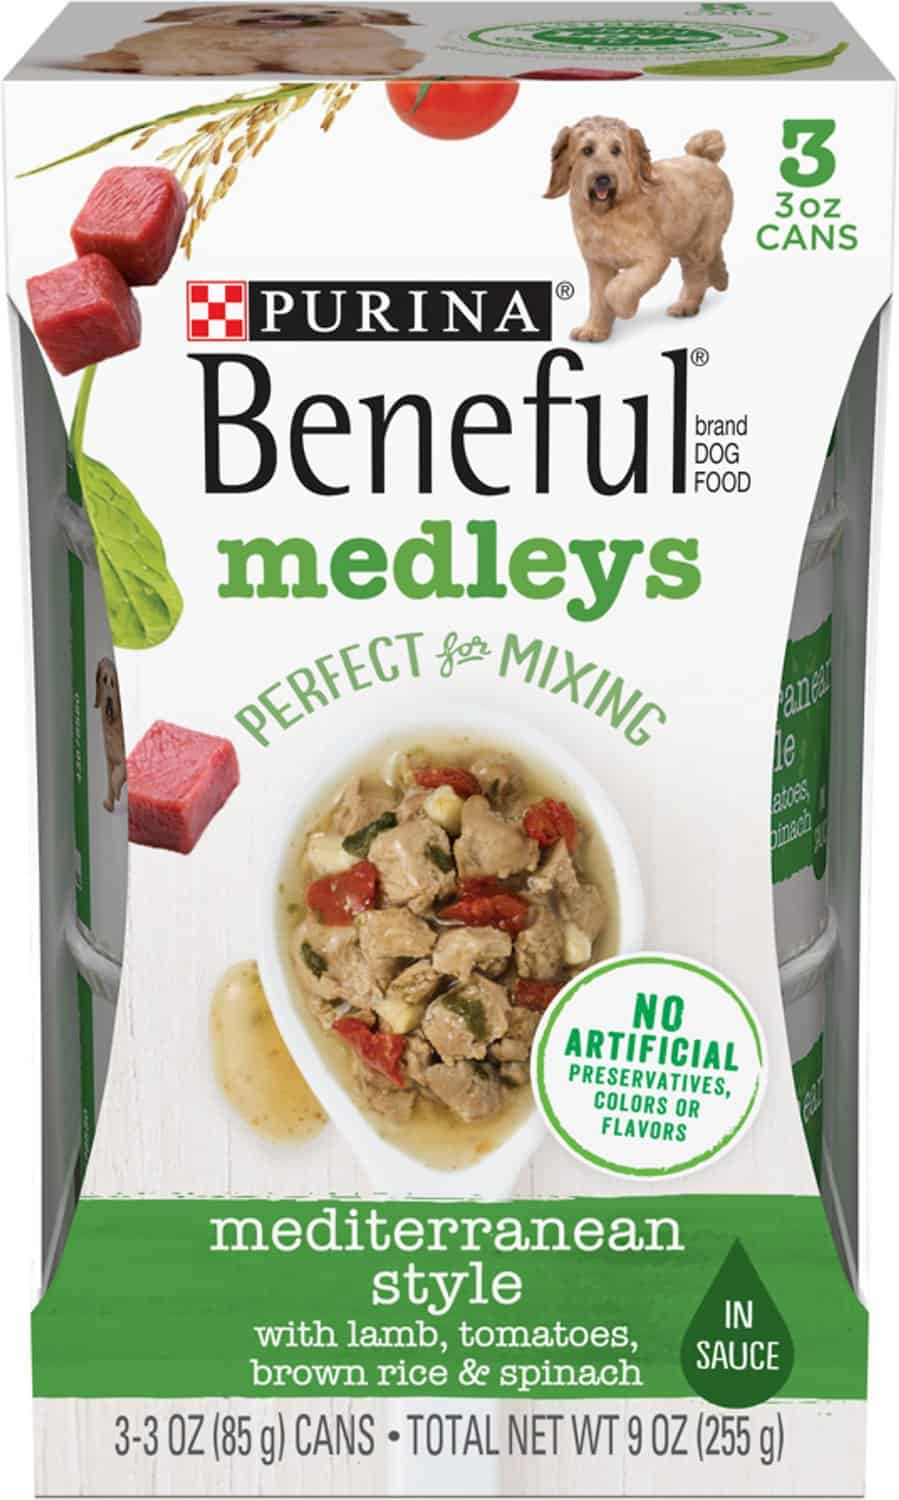 Beneful Dog Food Review 2021: The Good & The Bad Revealed! 31